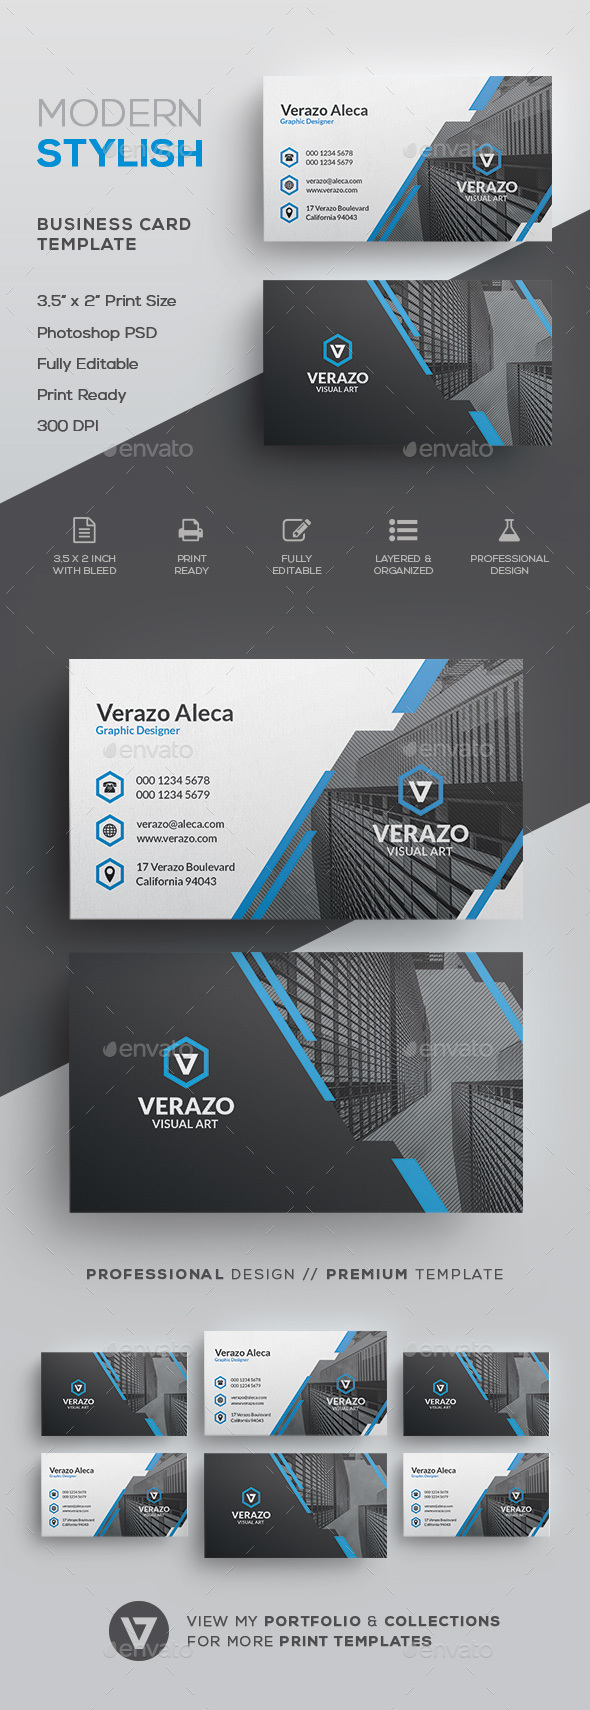 Modern Stylish Corporate Business Card Template - Corporate Business Cards